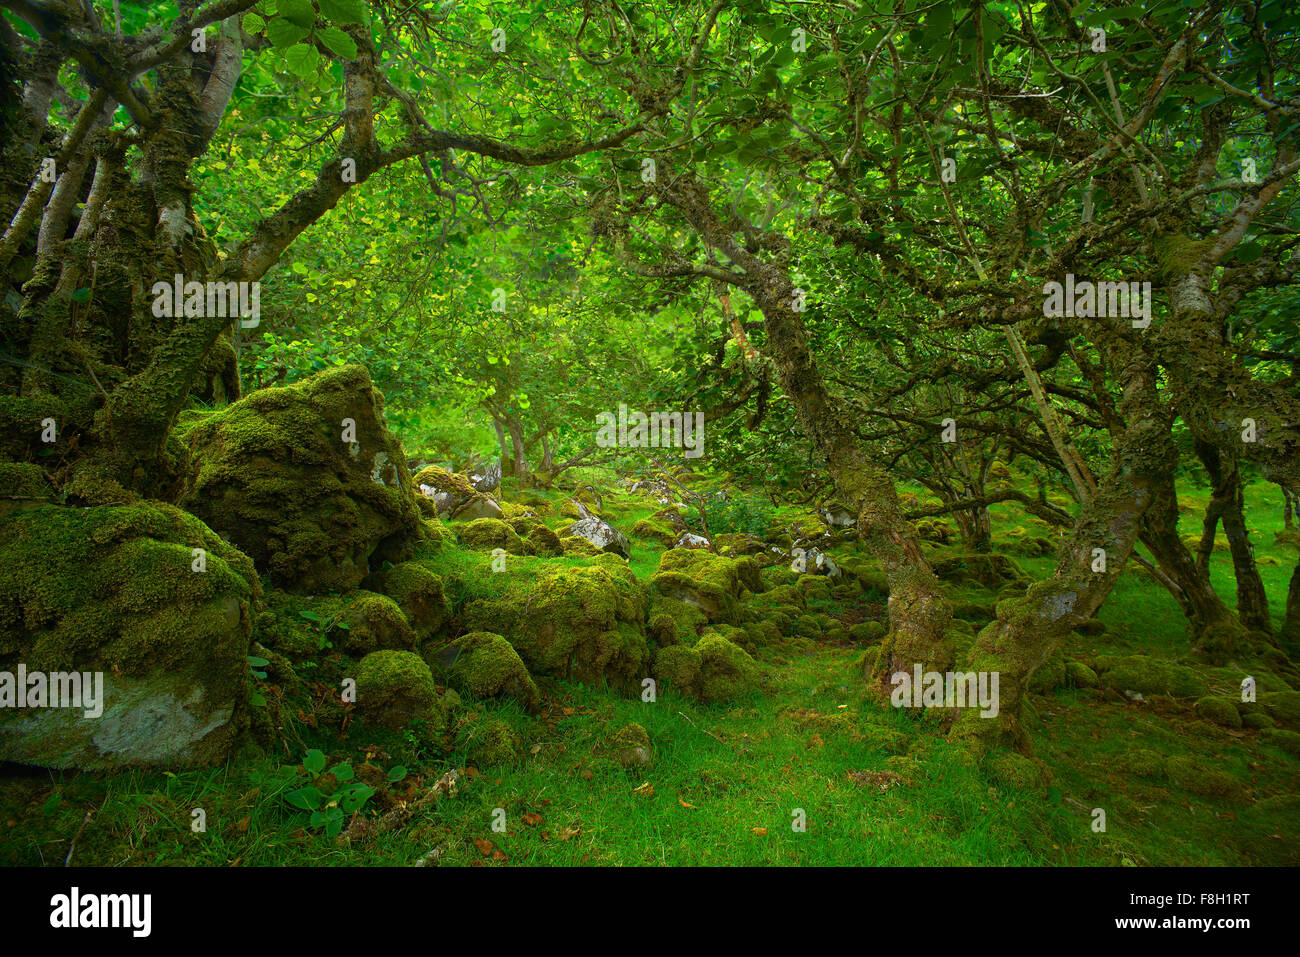 Trees over mossy rocks in forest Stock Photo